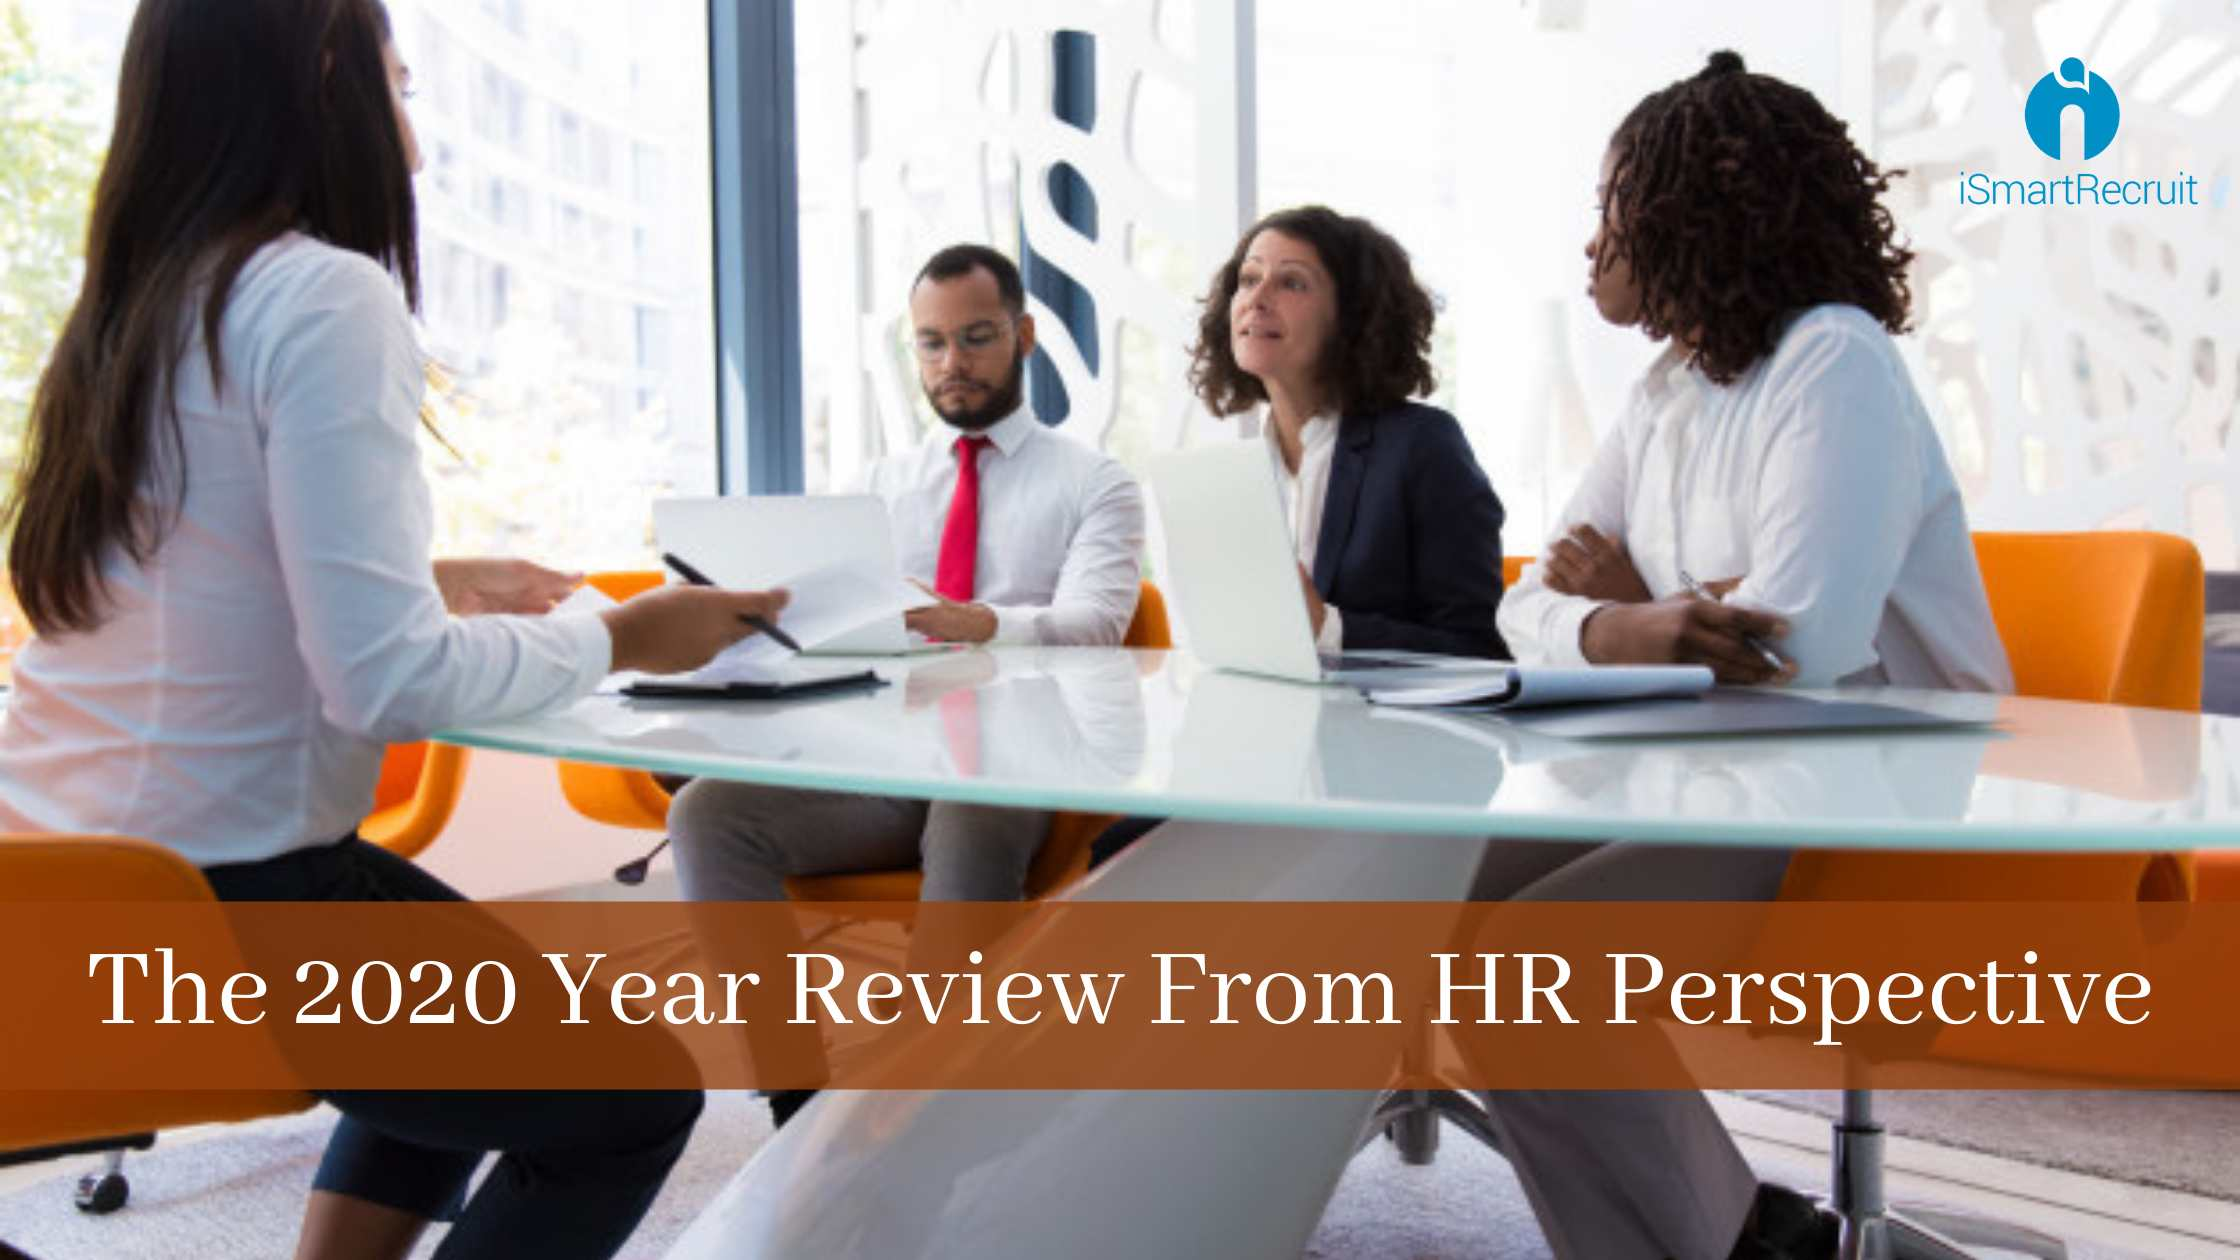 The 2020 Year Review From HR Perspective